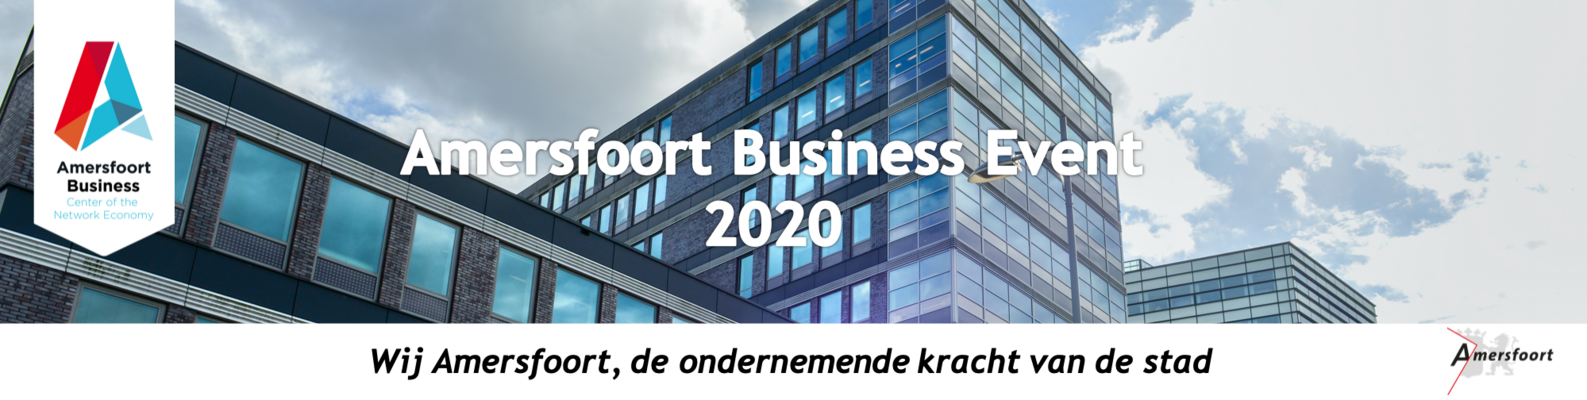 Amersfoort Business Event 2020